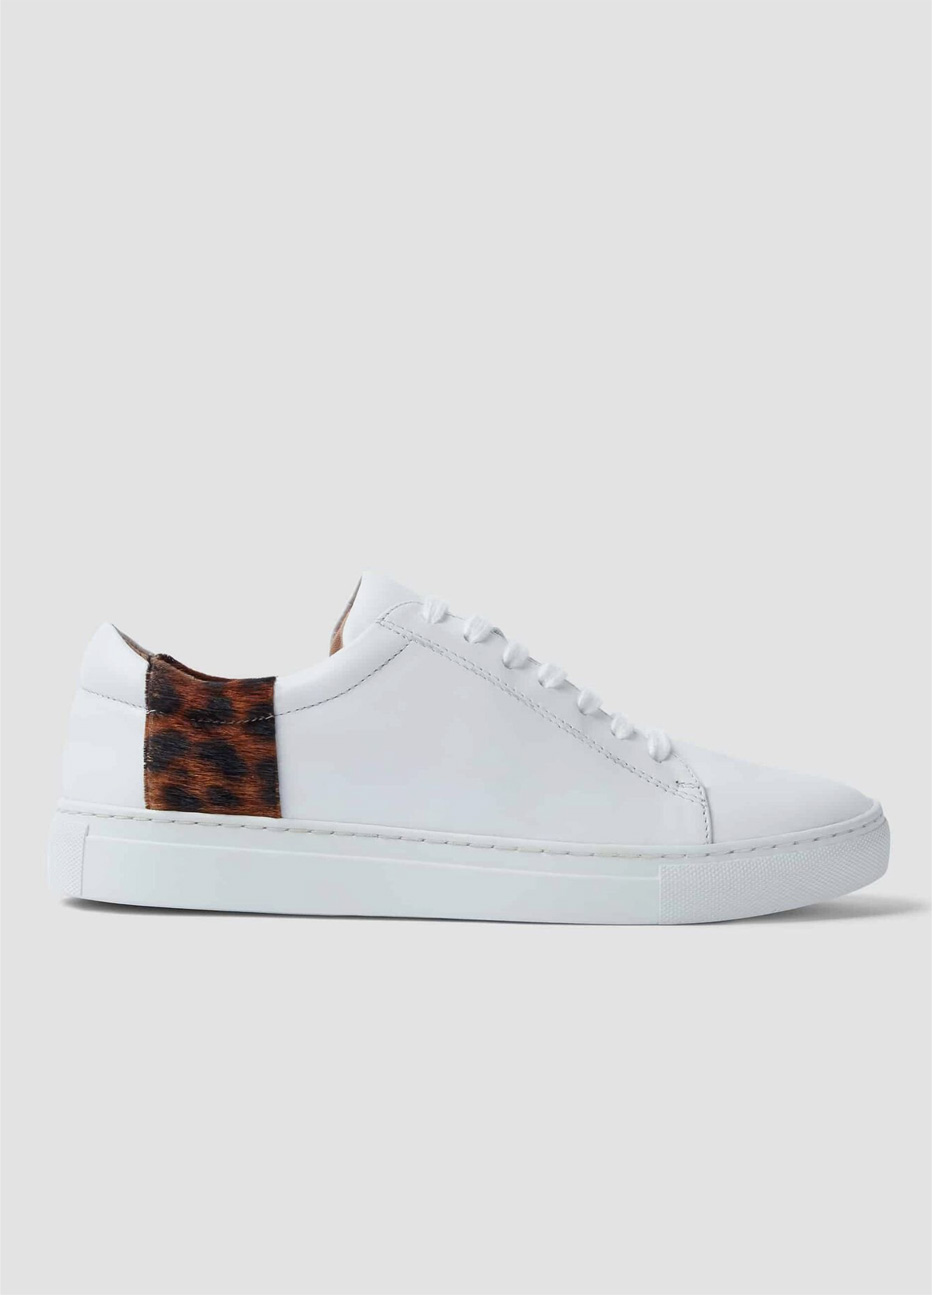 Hobbs women's trainers in white with a leopard print strip design.